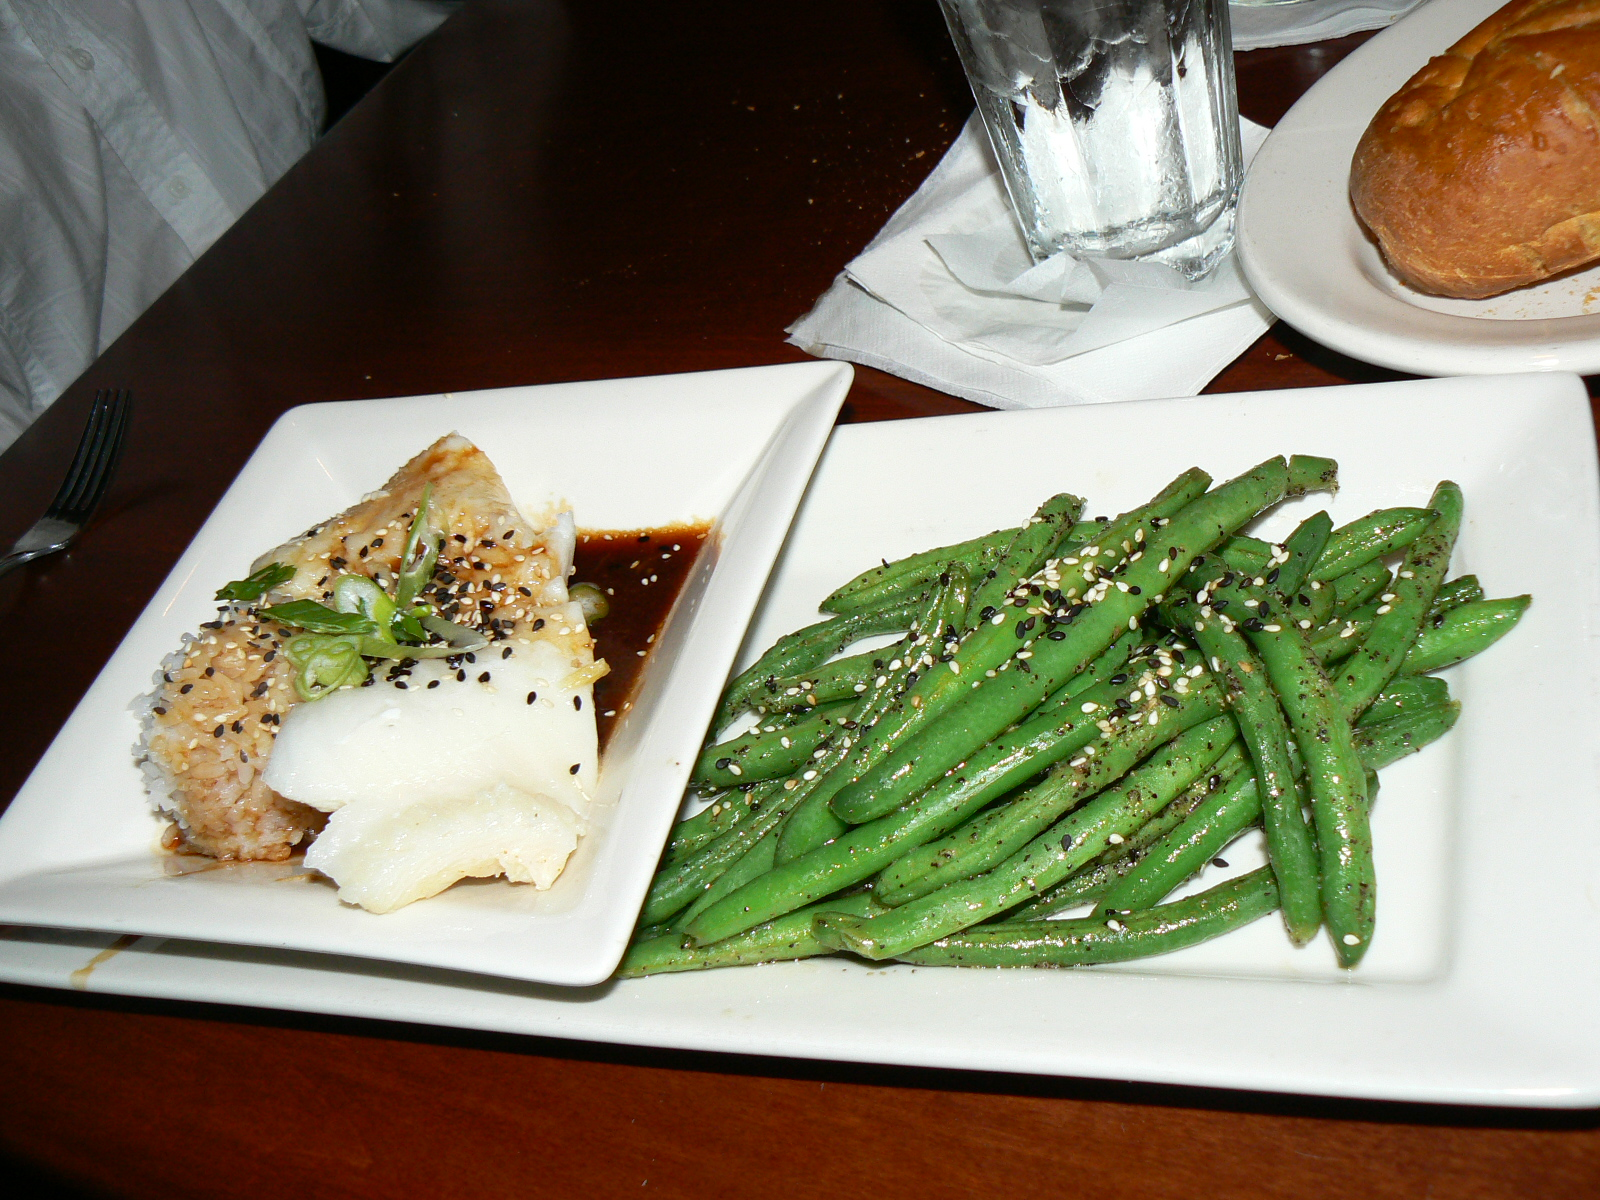 Flavorful excursions dinner at mitchell 39 s fish market for Mitchells fish market newport